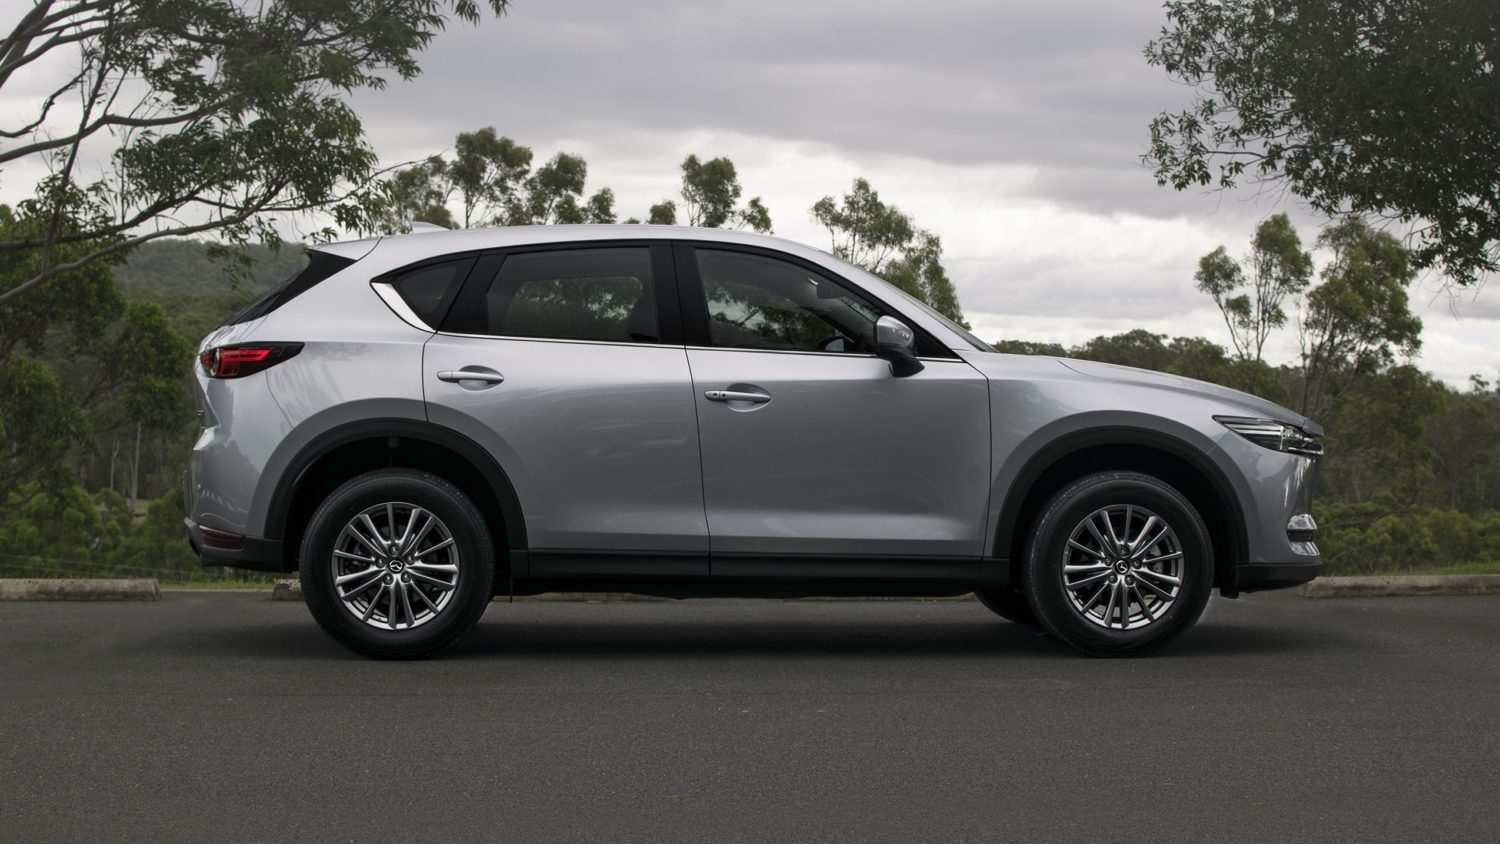 32 A 2020 Mazda Cx 5 Spy Shoot